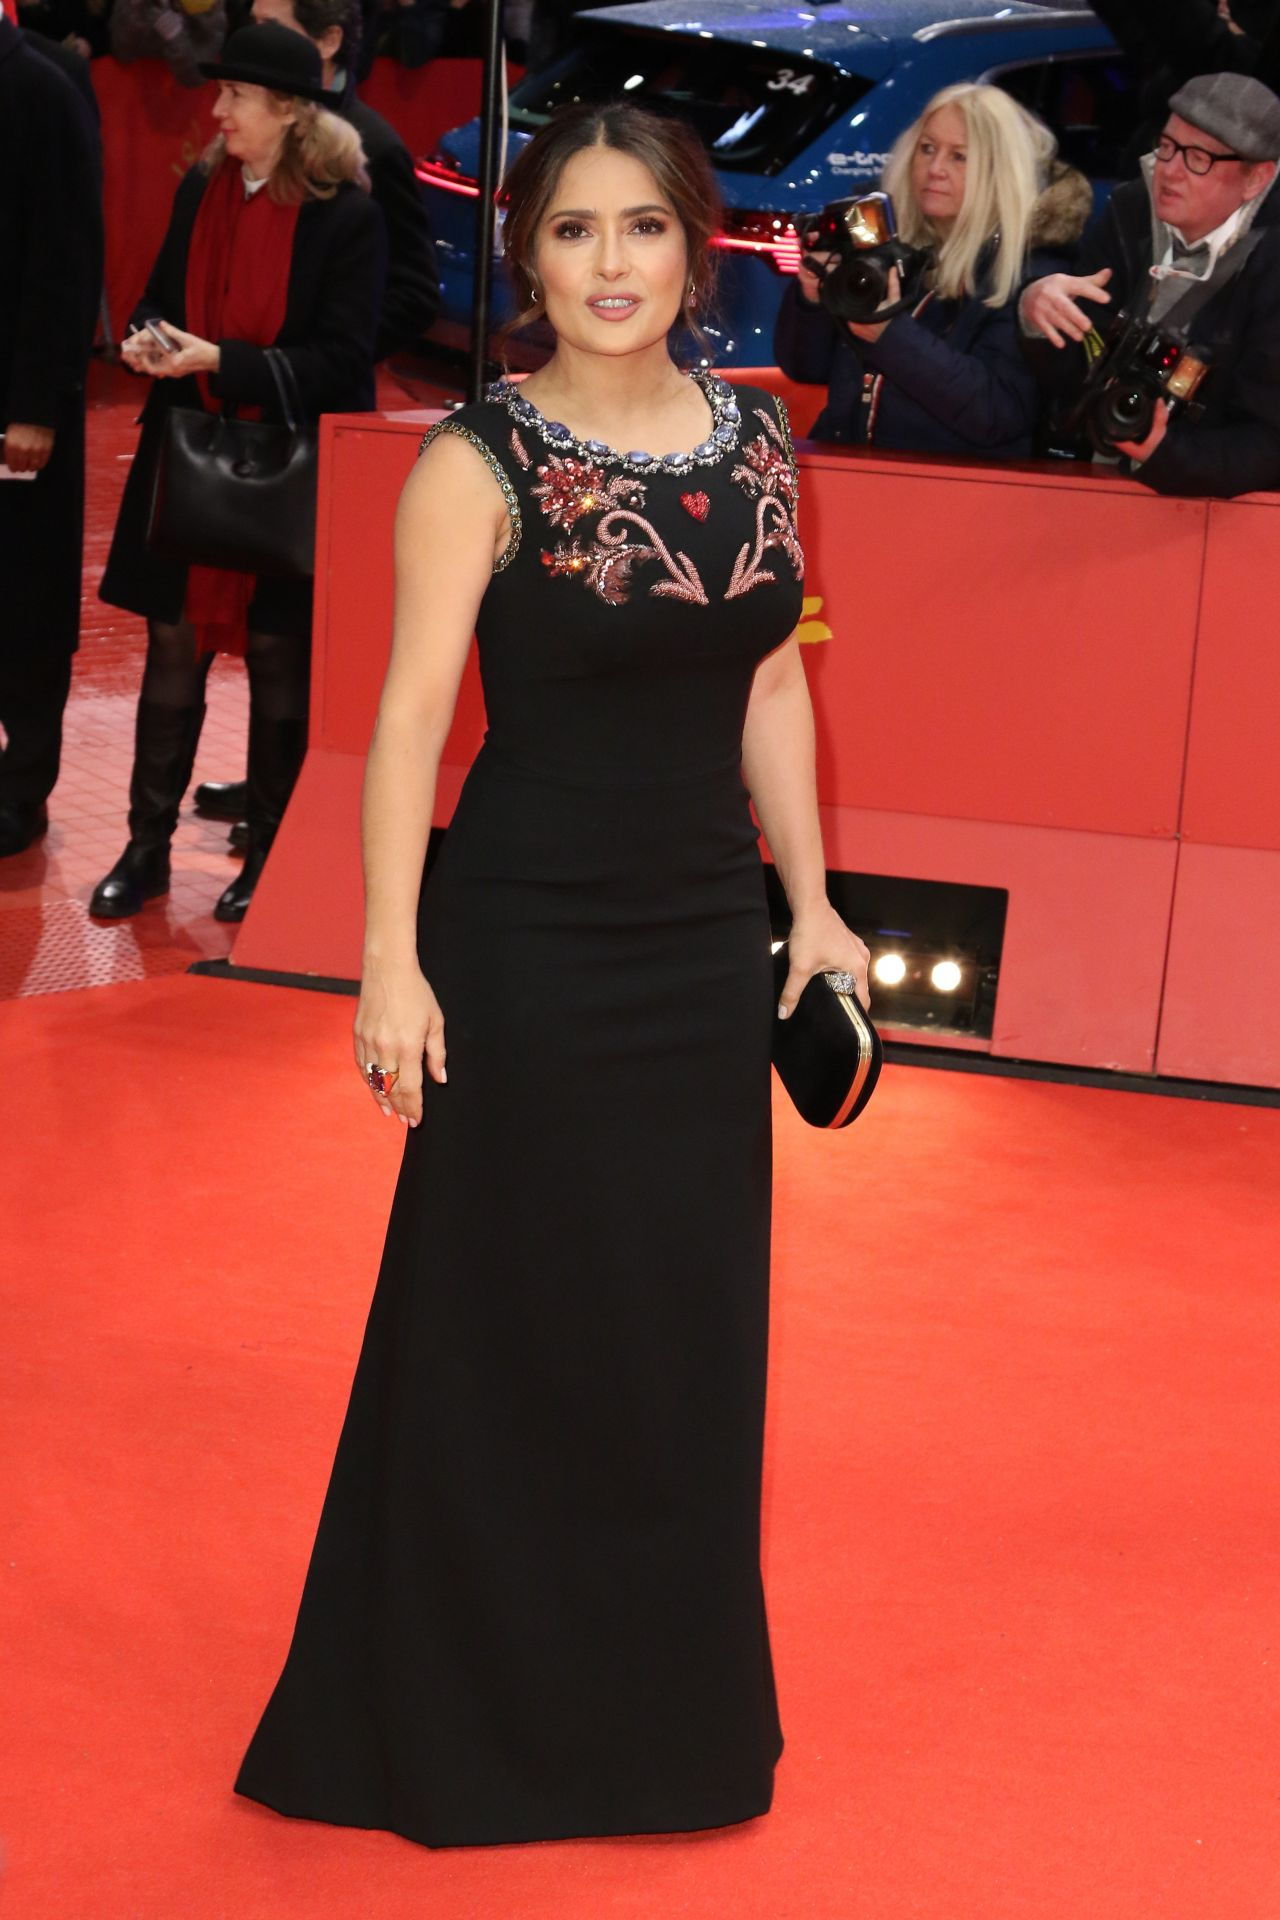 salma-hayek-in-gucci-the-roads-not-taken-berlinale-film-festival-premiere